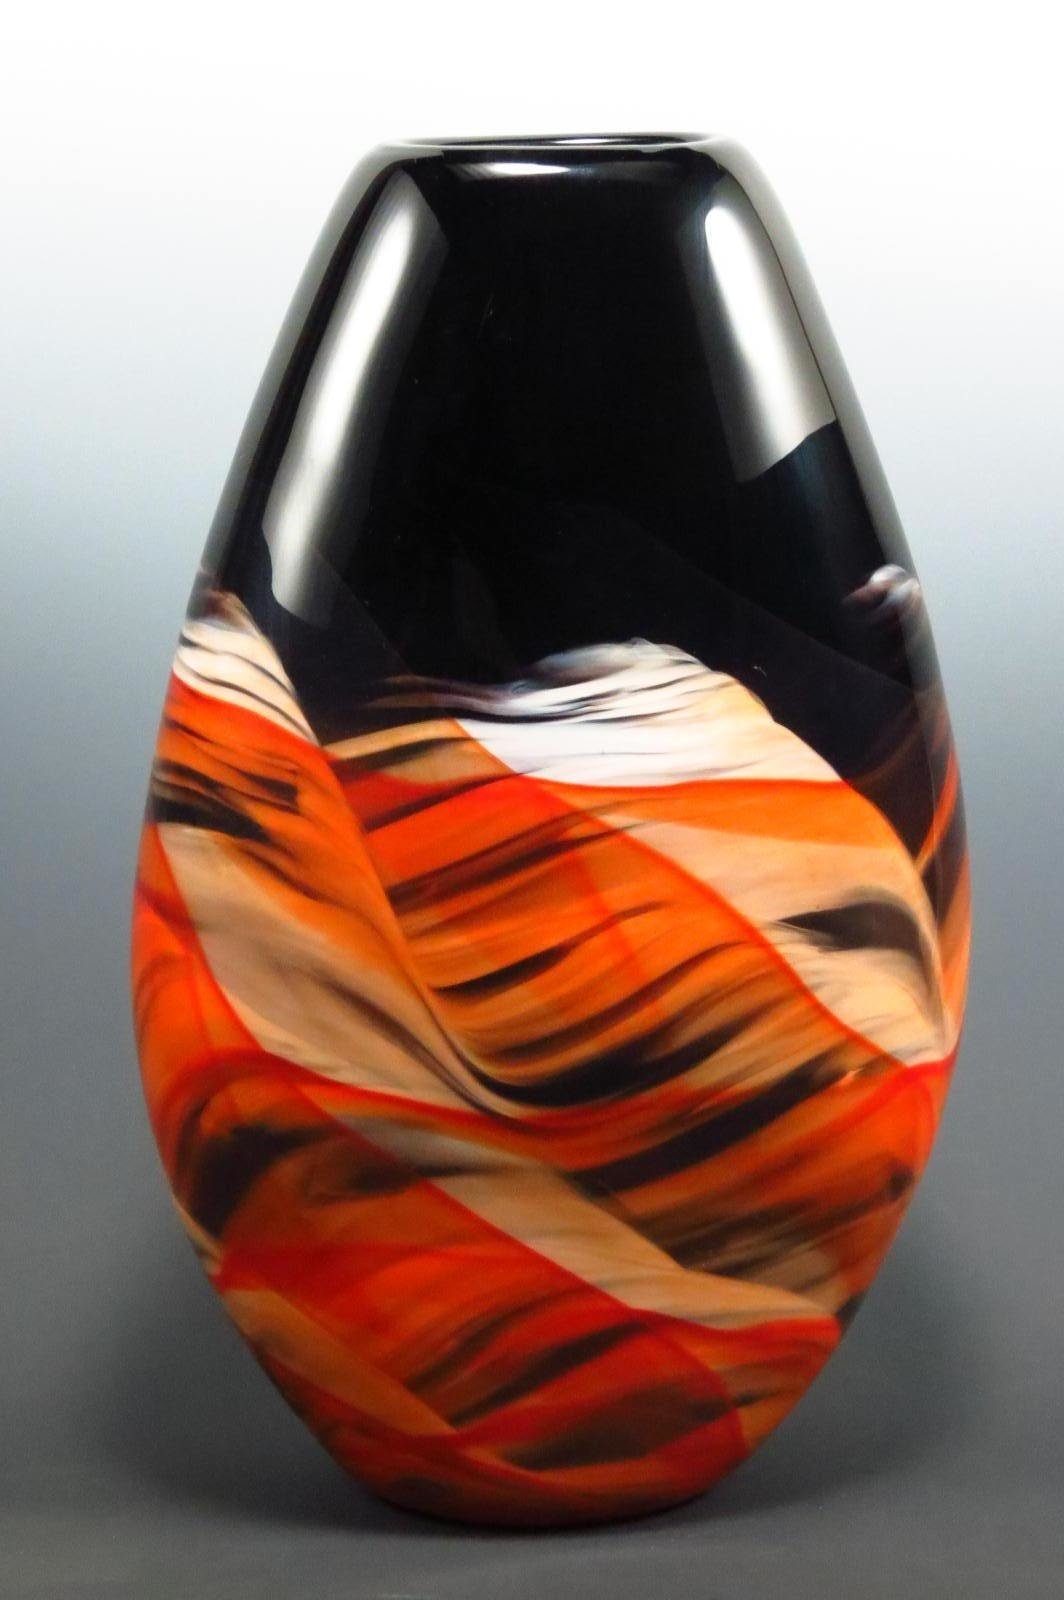 Red Amp Black Teardrop Vase By Mark Rosenbaum Art Glass Vase Artful Home